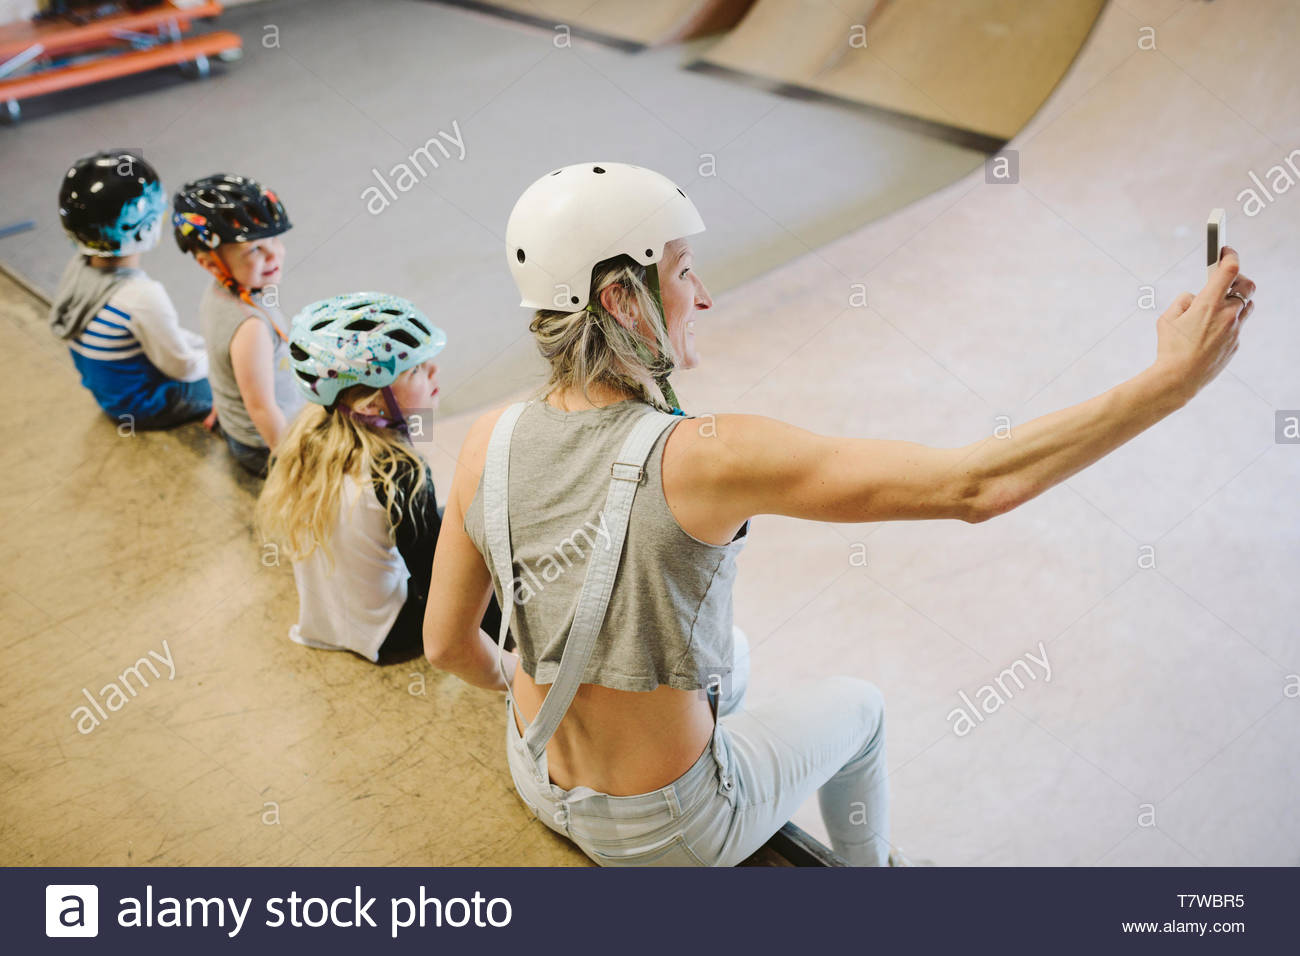 Mother and children taking selfie on ramp at indoor skate park - Stock Image